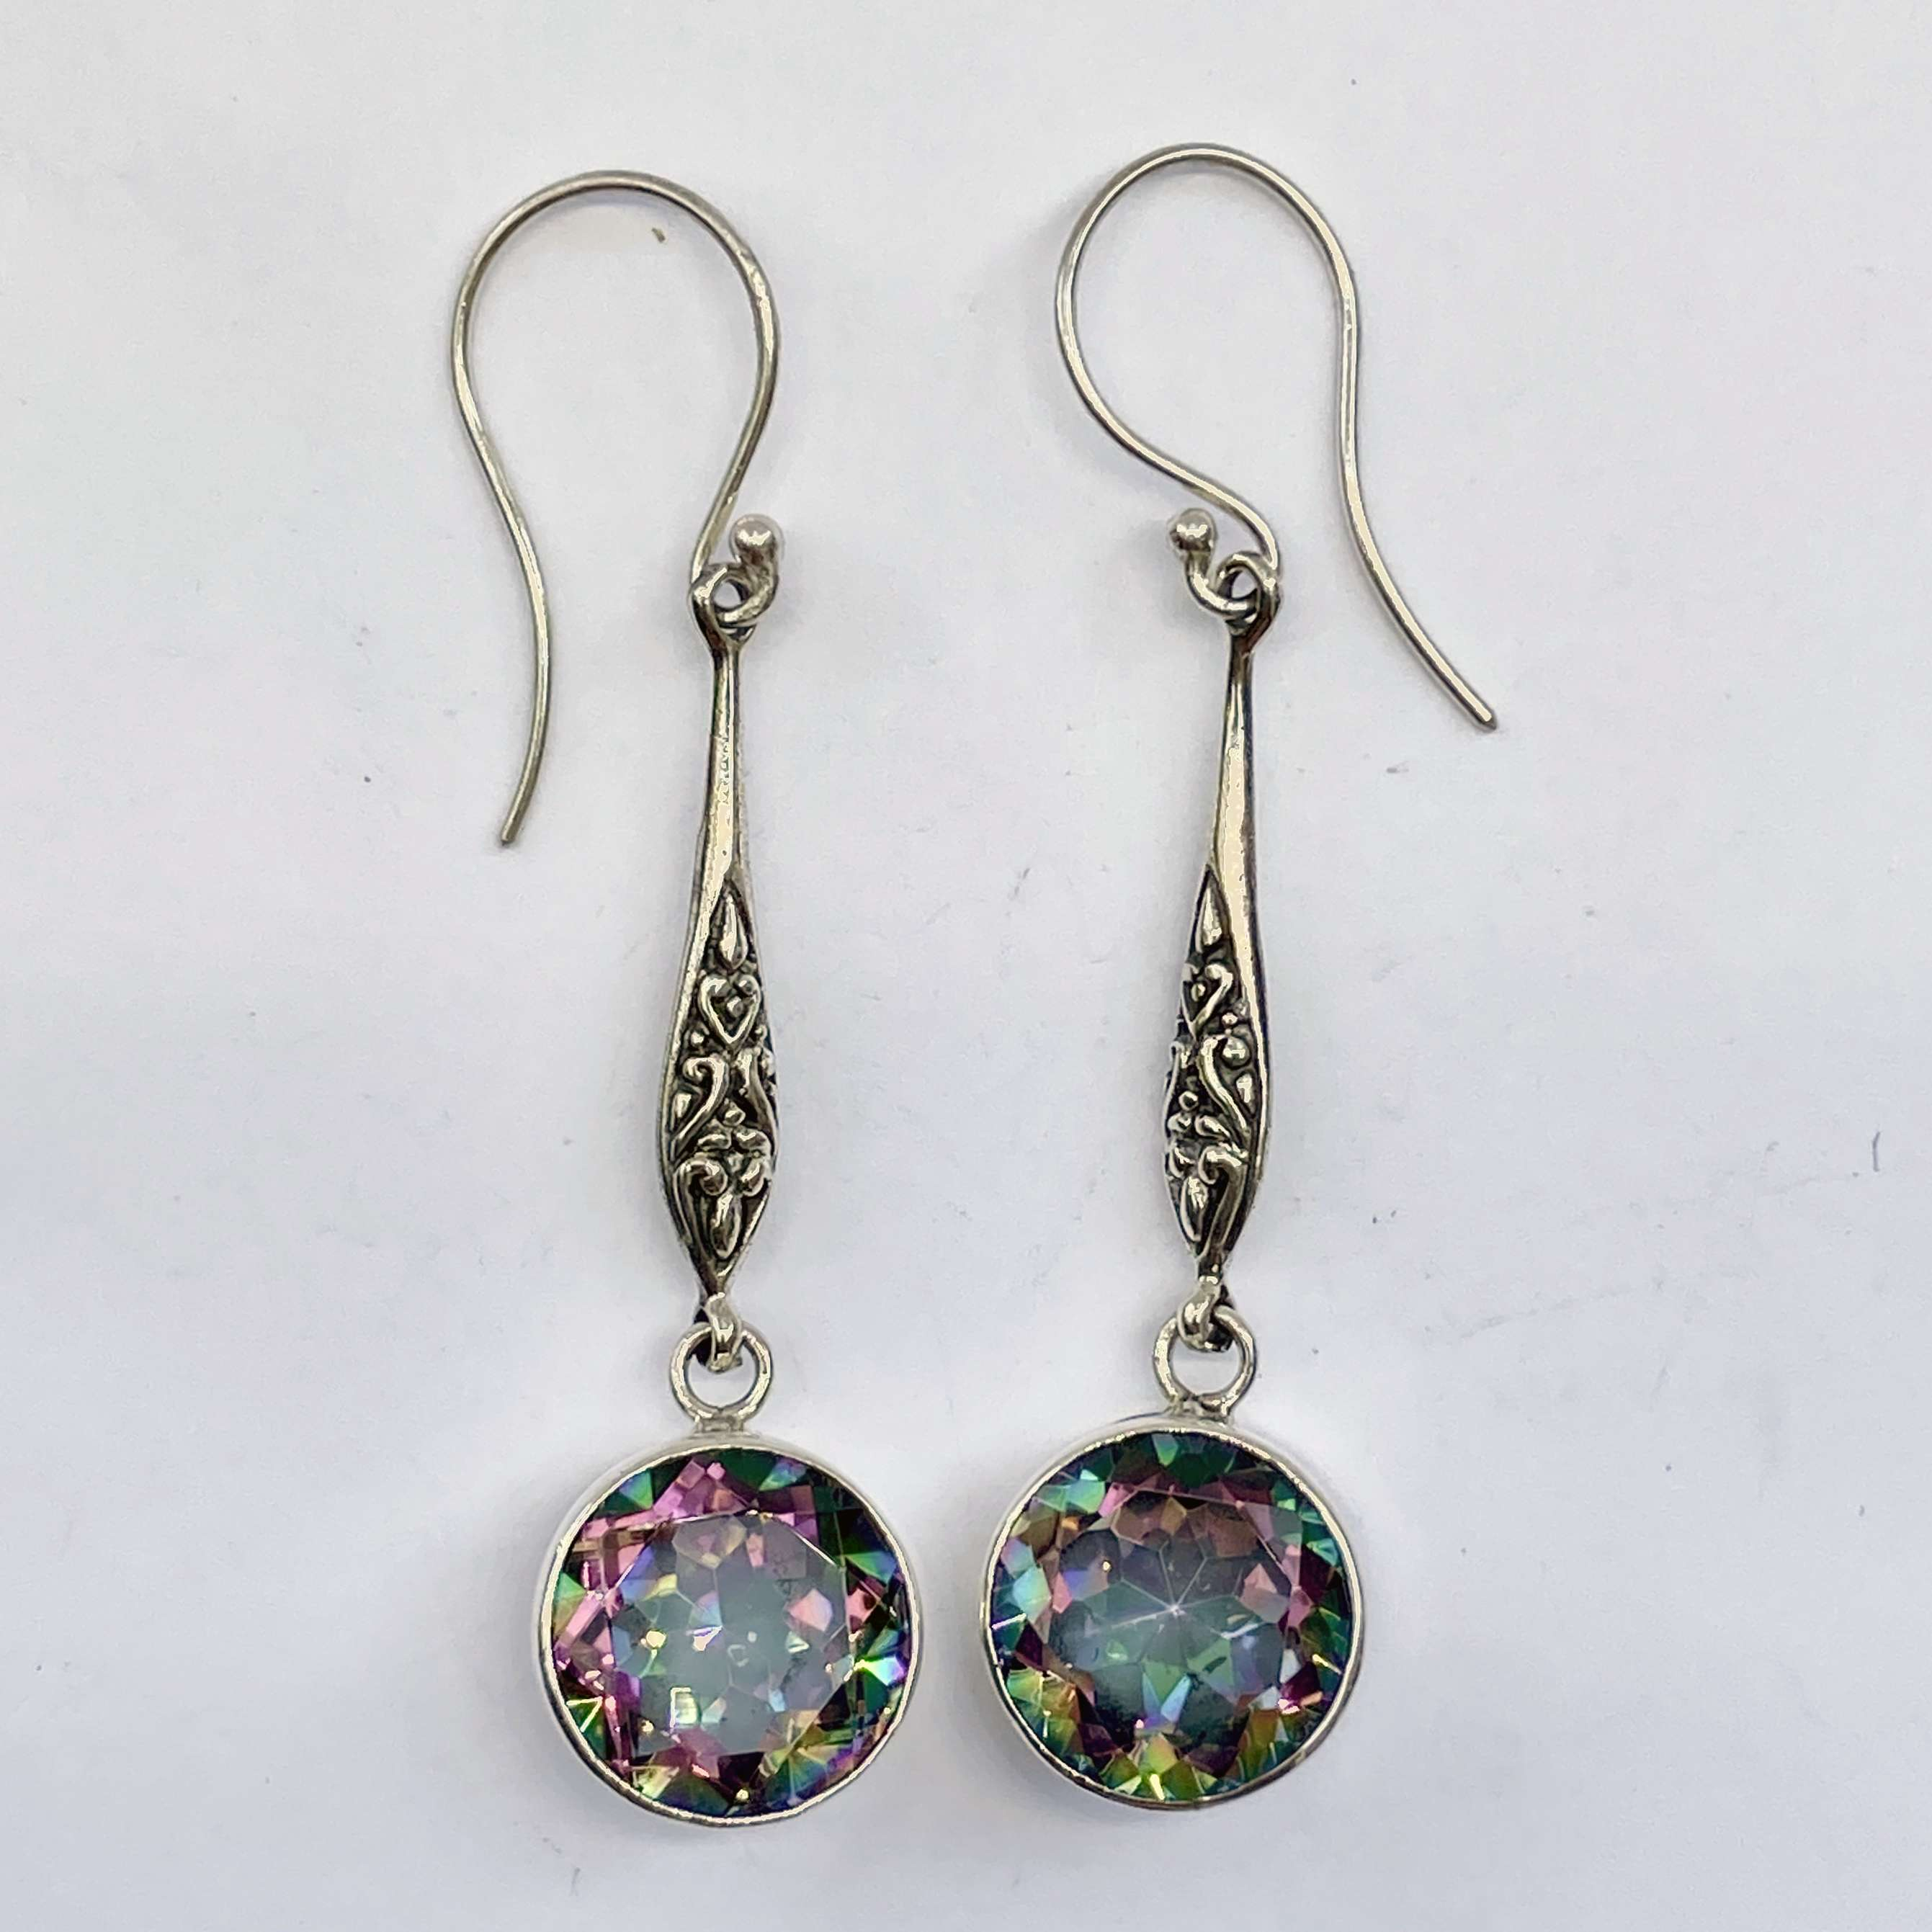 (HANDMADE 925 BALI STERLING SILVER EARRINGS WITH MYSTIC TOPAZ)